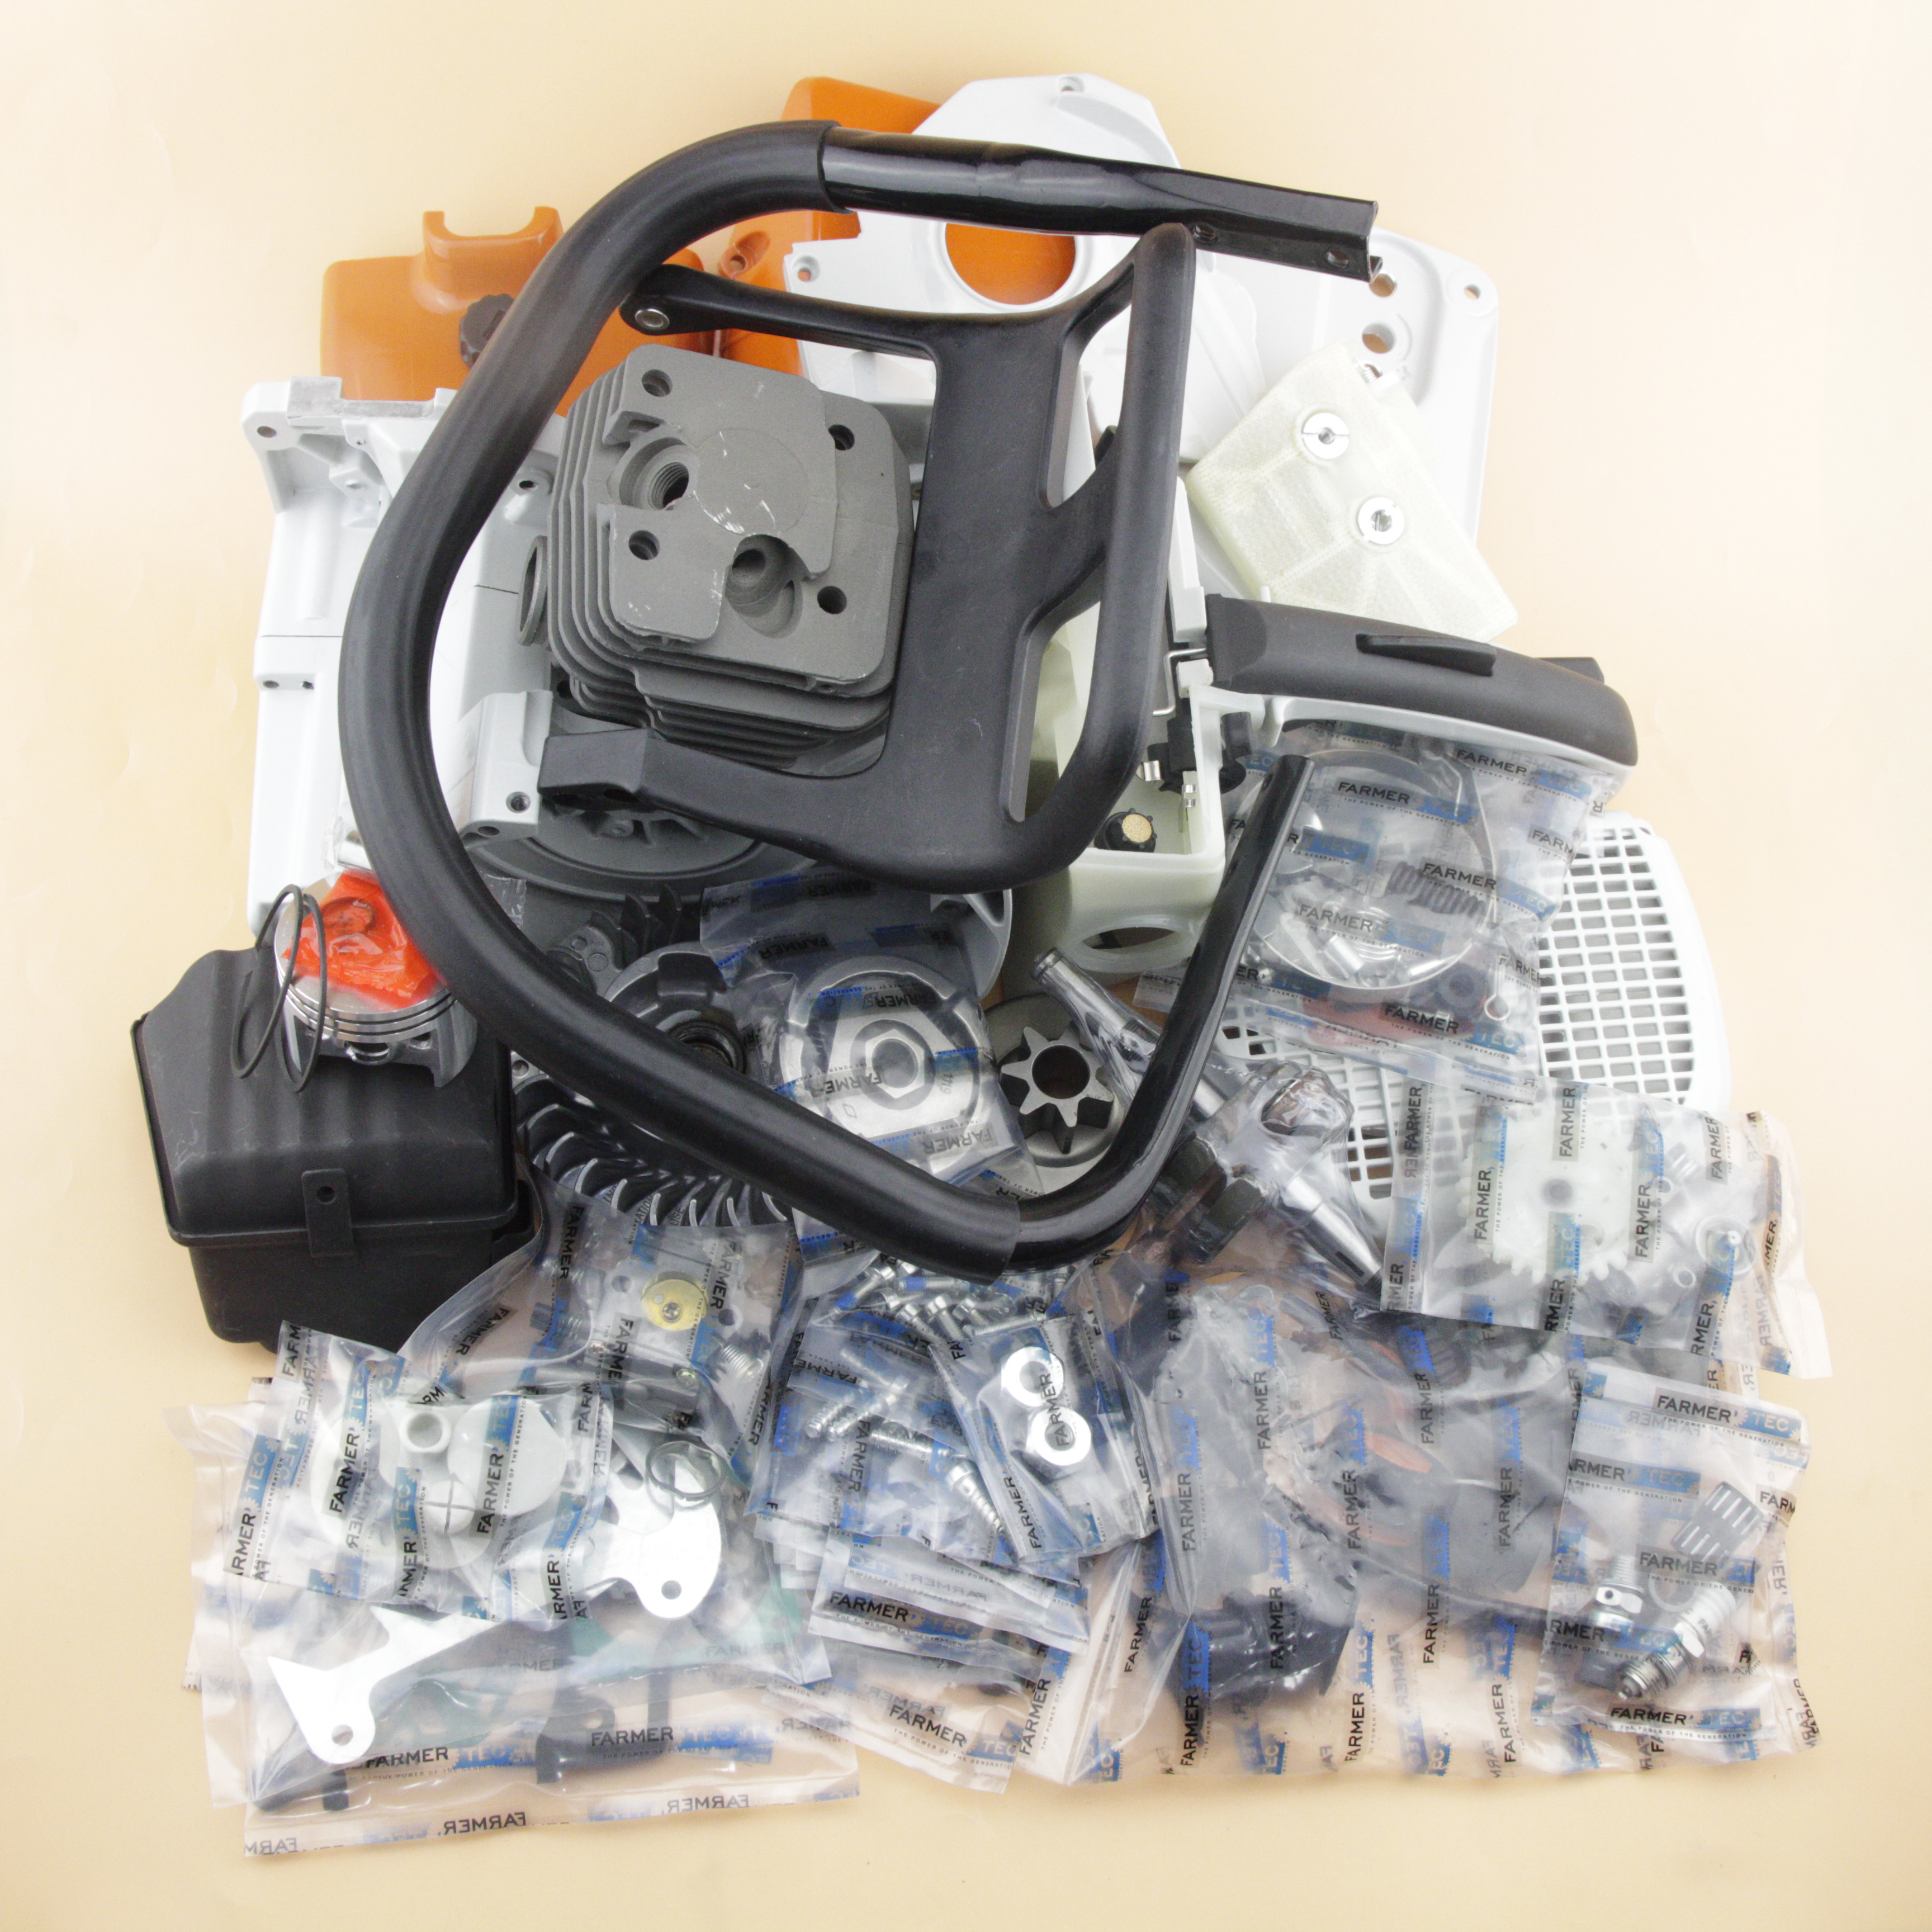 Complete chain saw kit stihl chainsaw kit husqvarna chainsaw kits complete repair parts for stihl 038 ms380 ms381 chainsaw stihl 038 parts stihl ms380 keyboard keysfo Image collections